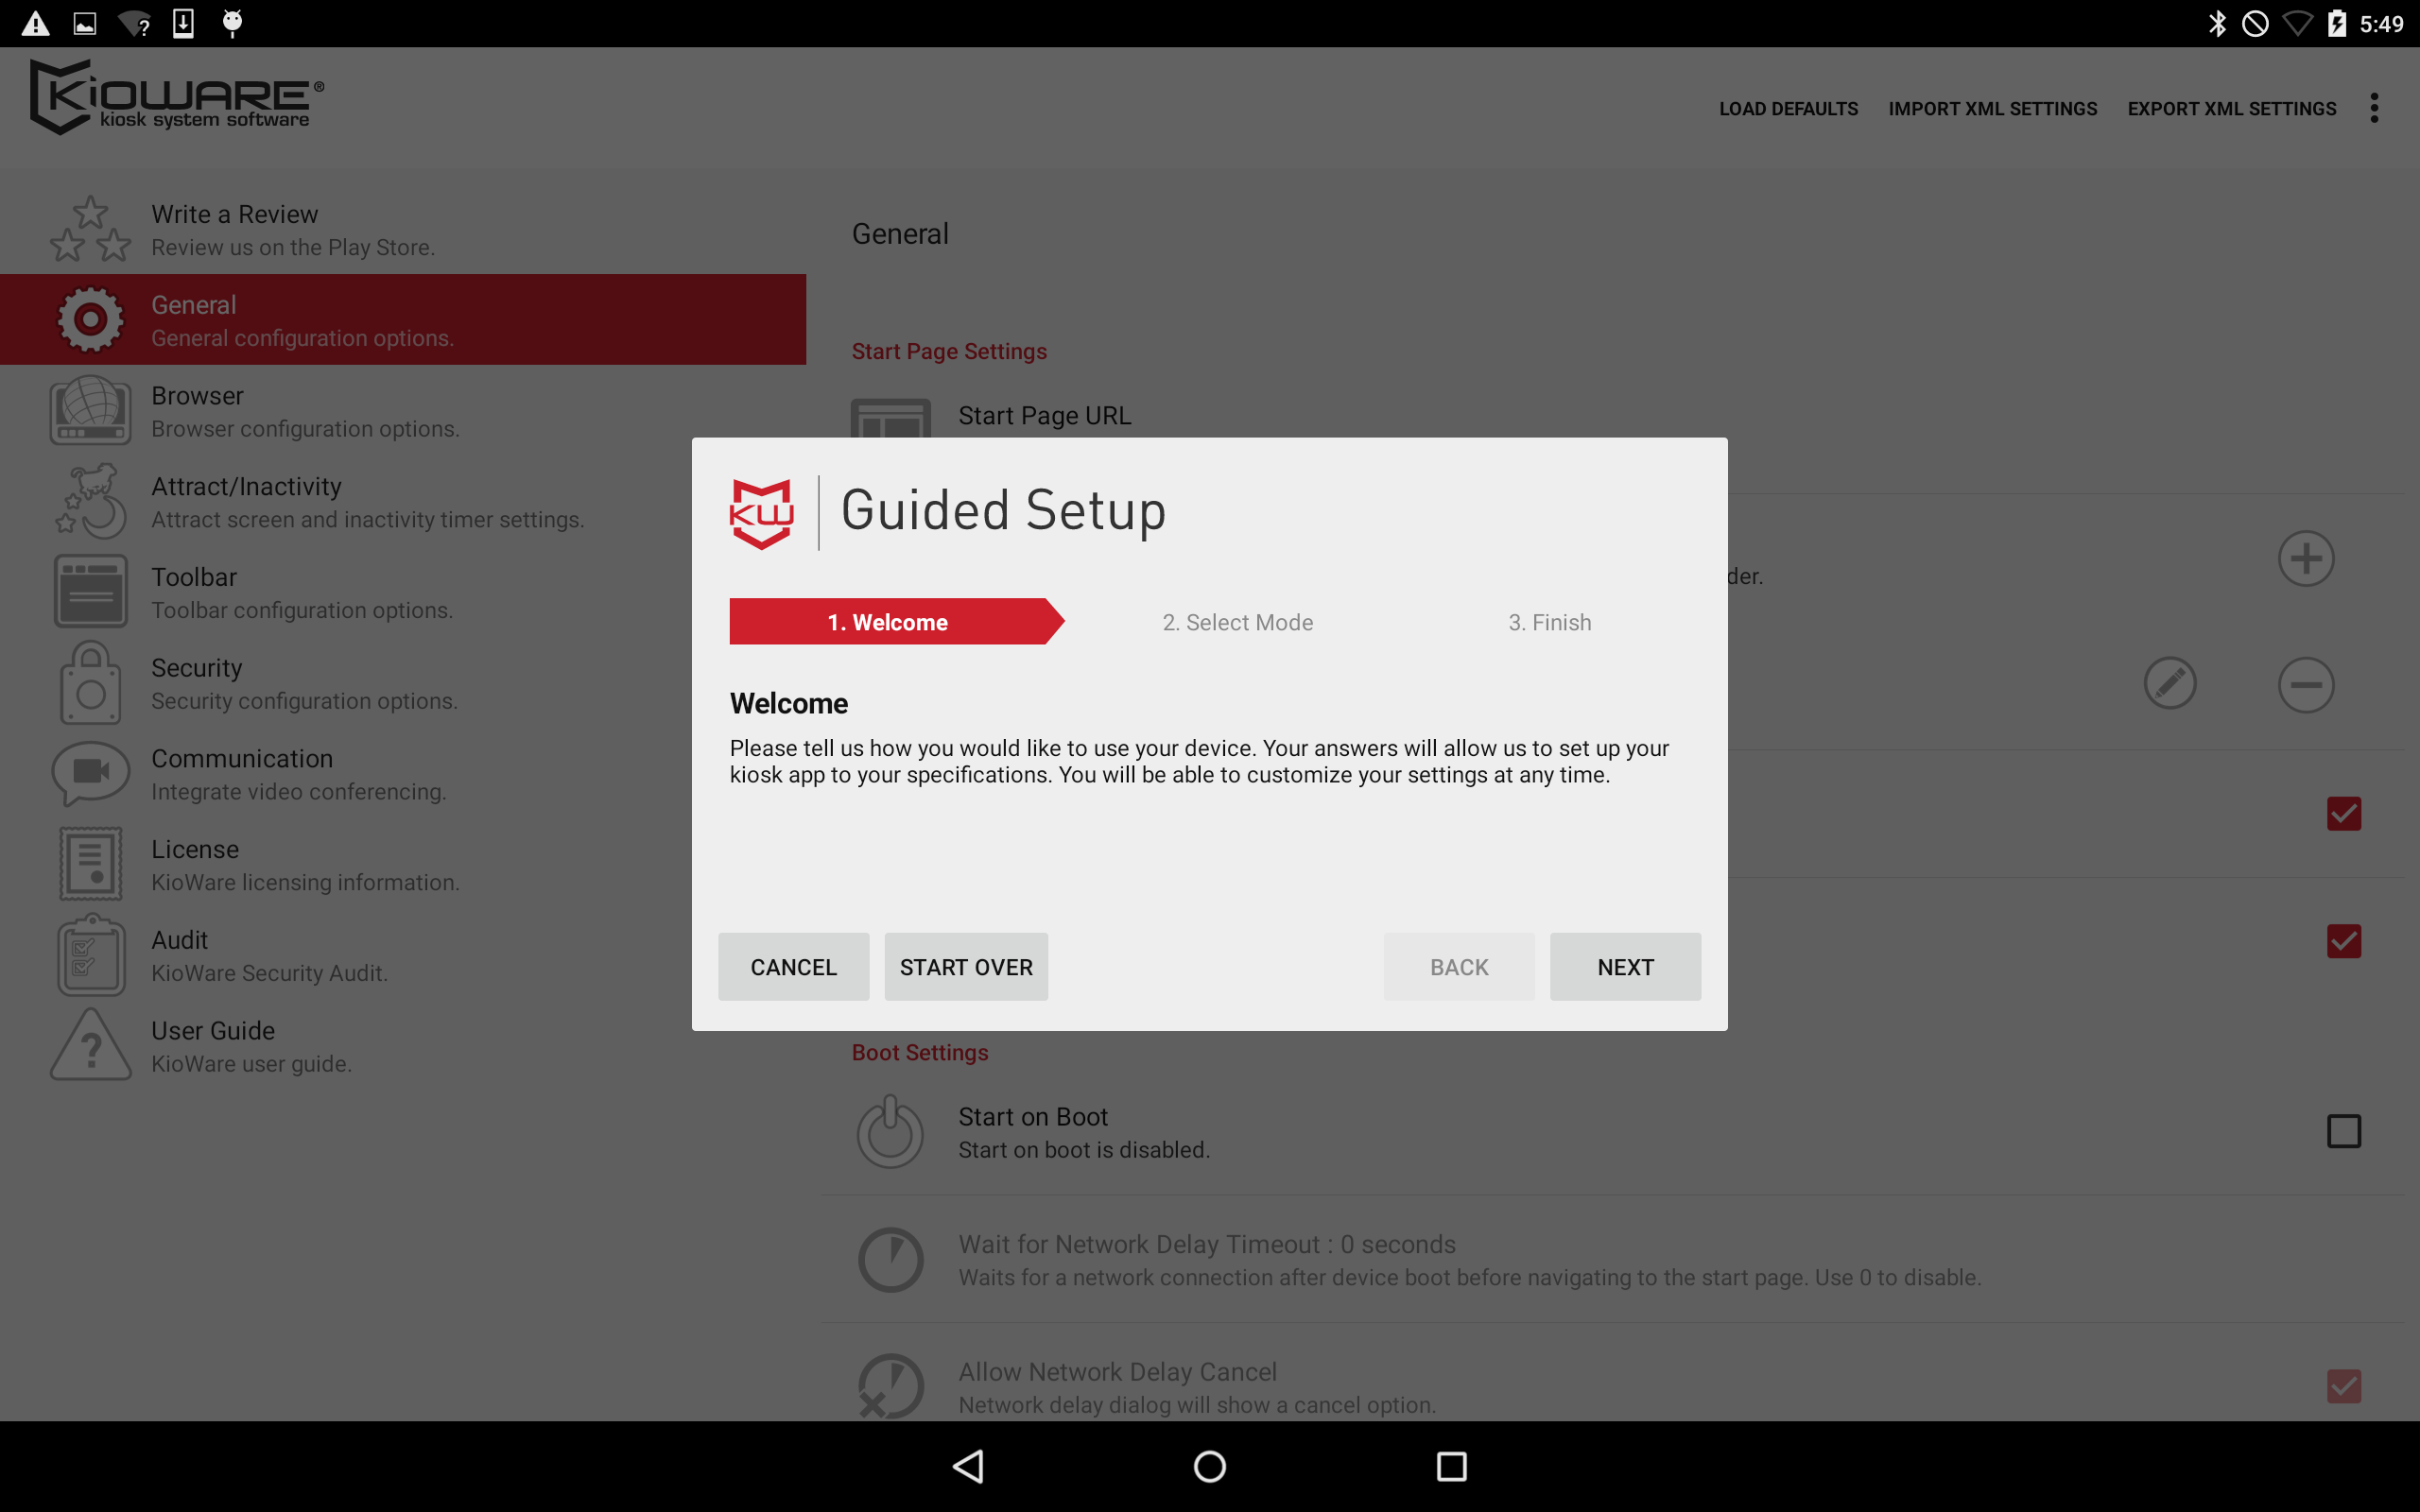 """We have a new version of KioWare for Android out (3.12) and it has a few great new features worth sharing. A new """"Guided Setup"""" tool which allows new or existing users to configure KioWare by answering a few quick questions. Support for automatic actions. Kioware can now enable automatic log ins, redirects, session ends, or automatically run scripts when a specific URL is used. Easier method for provisioning Support multiple start page URLs. KioWare can now wait for a WIFI connection before booting."""